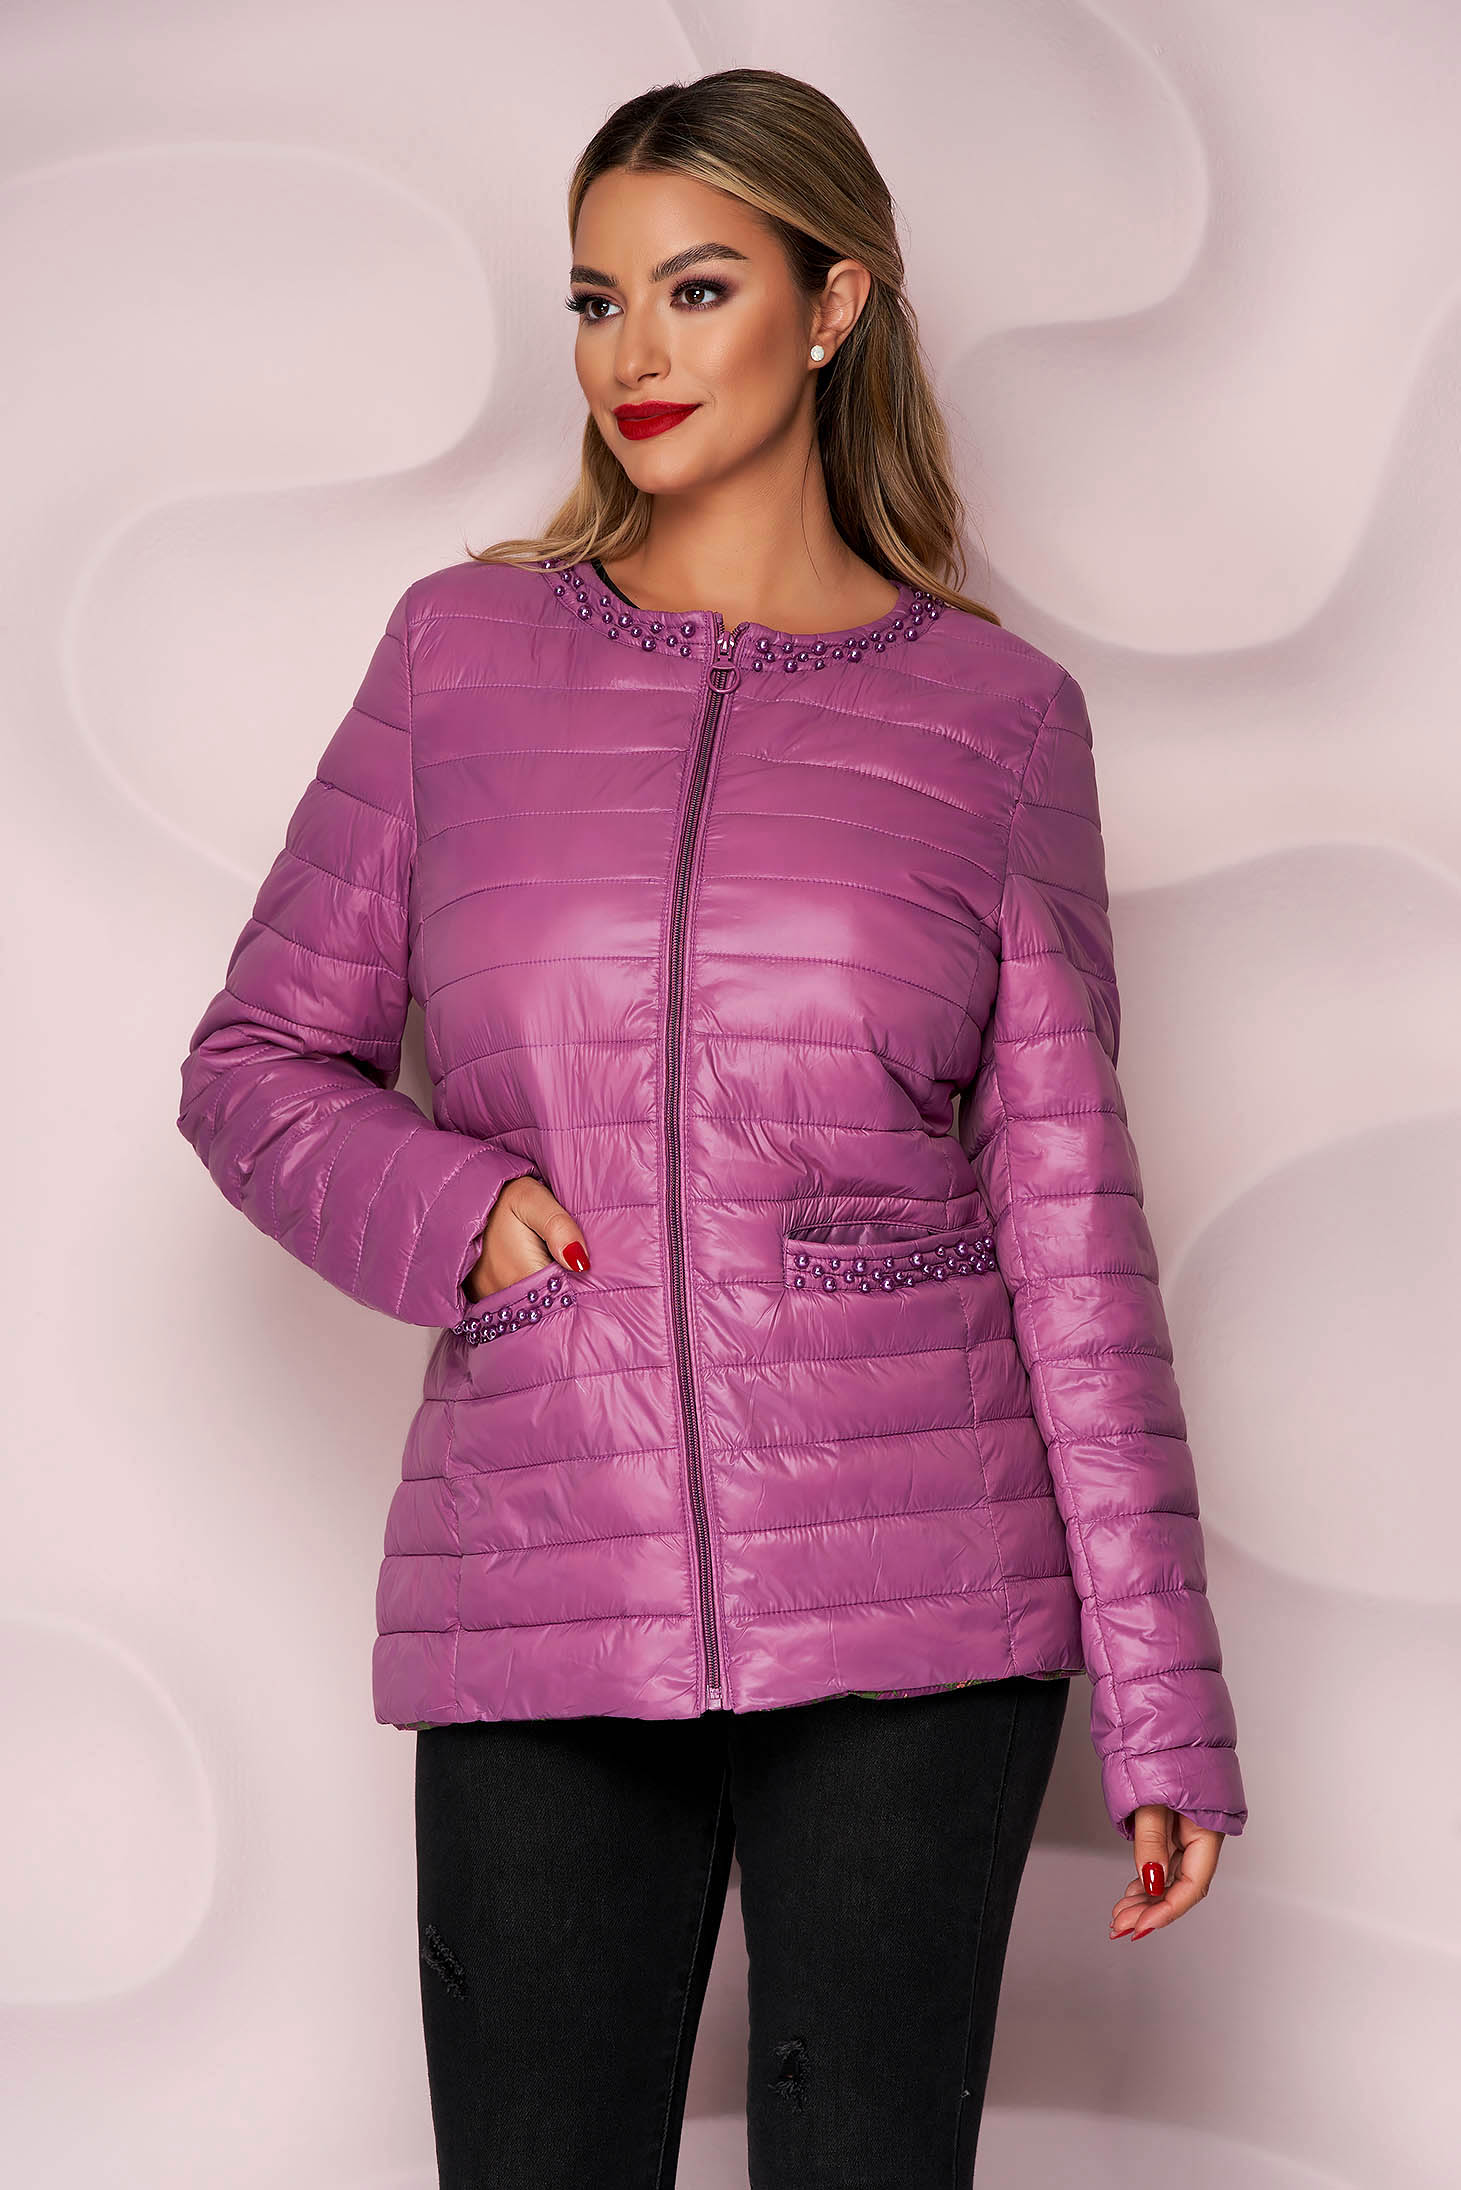 Purple jacket from slicker thin fabric with pearls straight